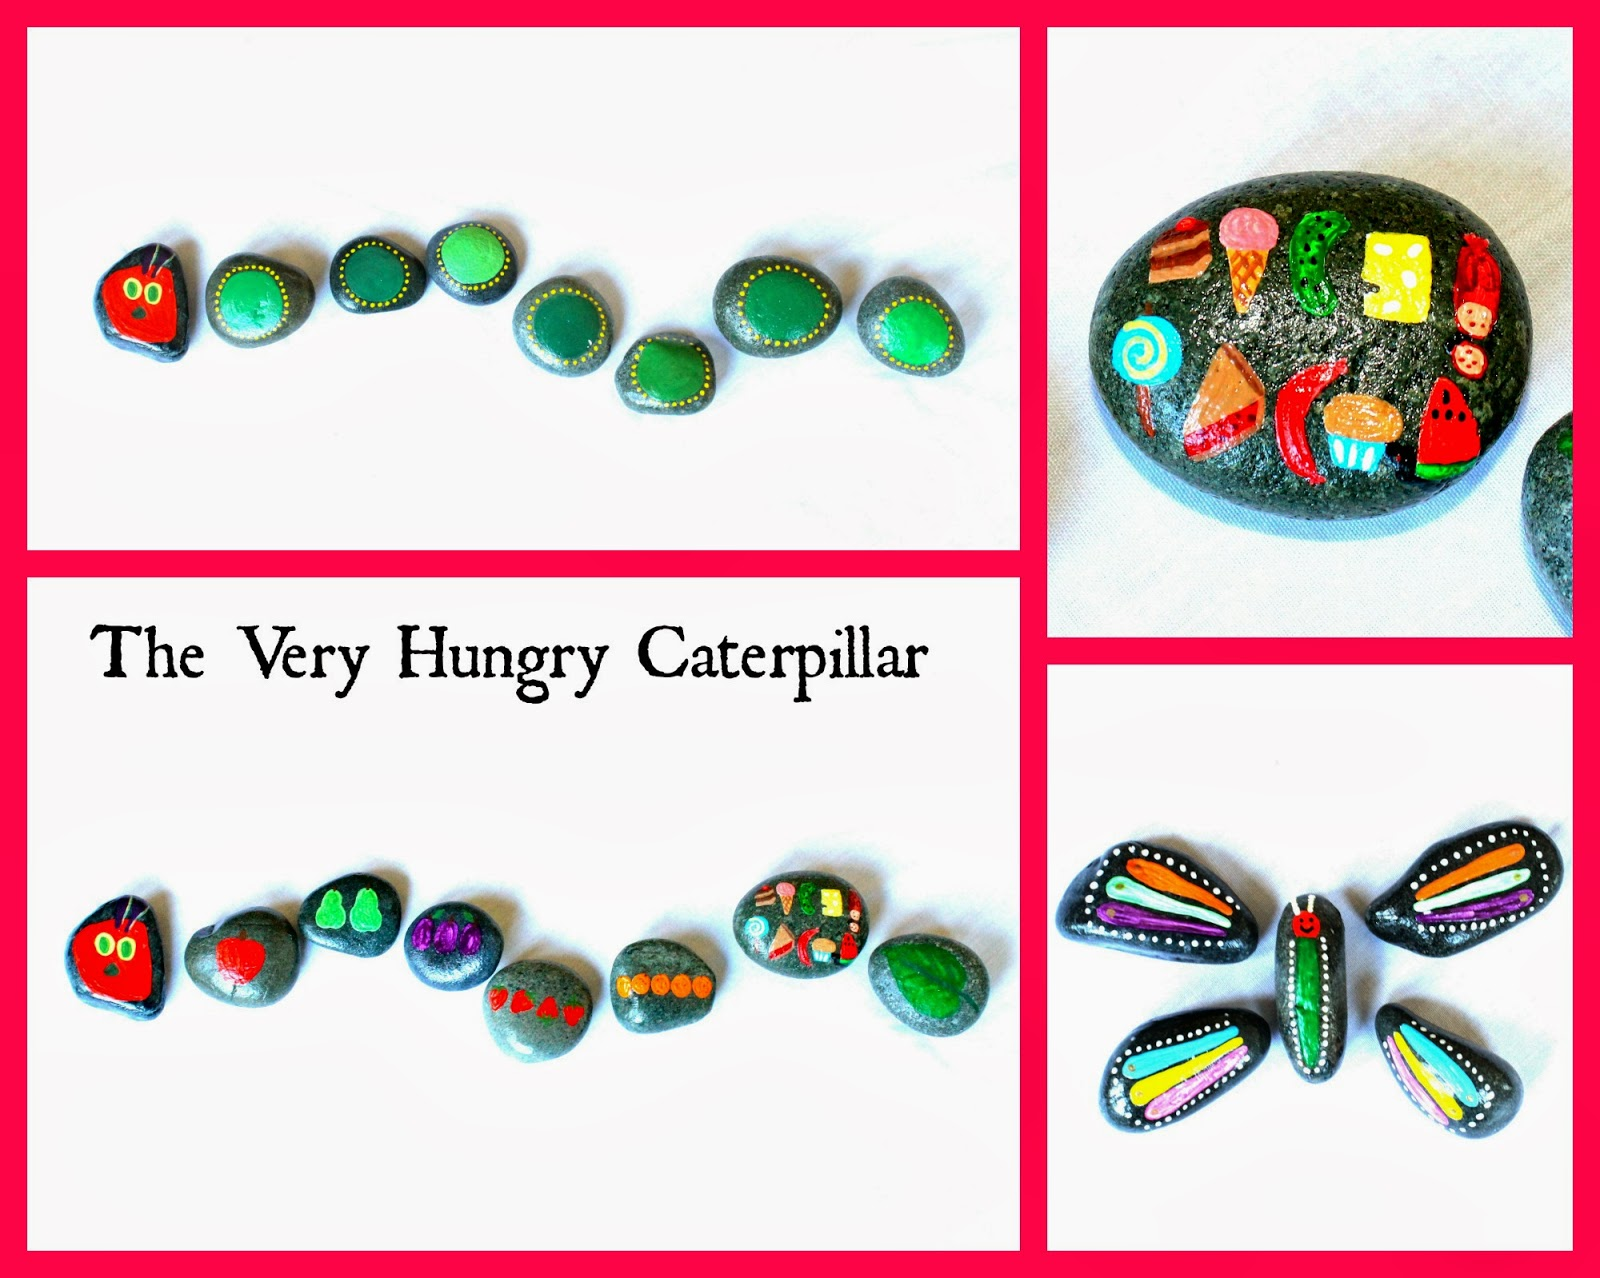 Montessori Beginnings The Very Hungry Caterpillar Story. Airport Singapore Signs Of Stroke. Syncope Signs Of Stroke. Cell Signs. Children's Hospital Signs. Eco Friendly Signs. Rustic Wooden Signs. Yeild Signs. Pre Diabetes Symptom Signs